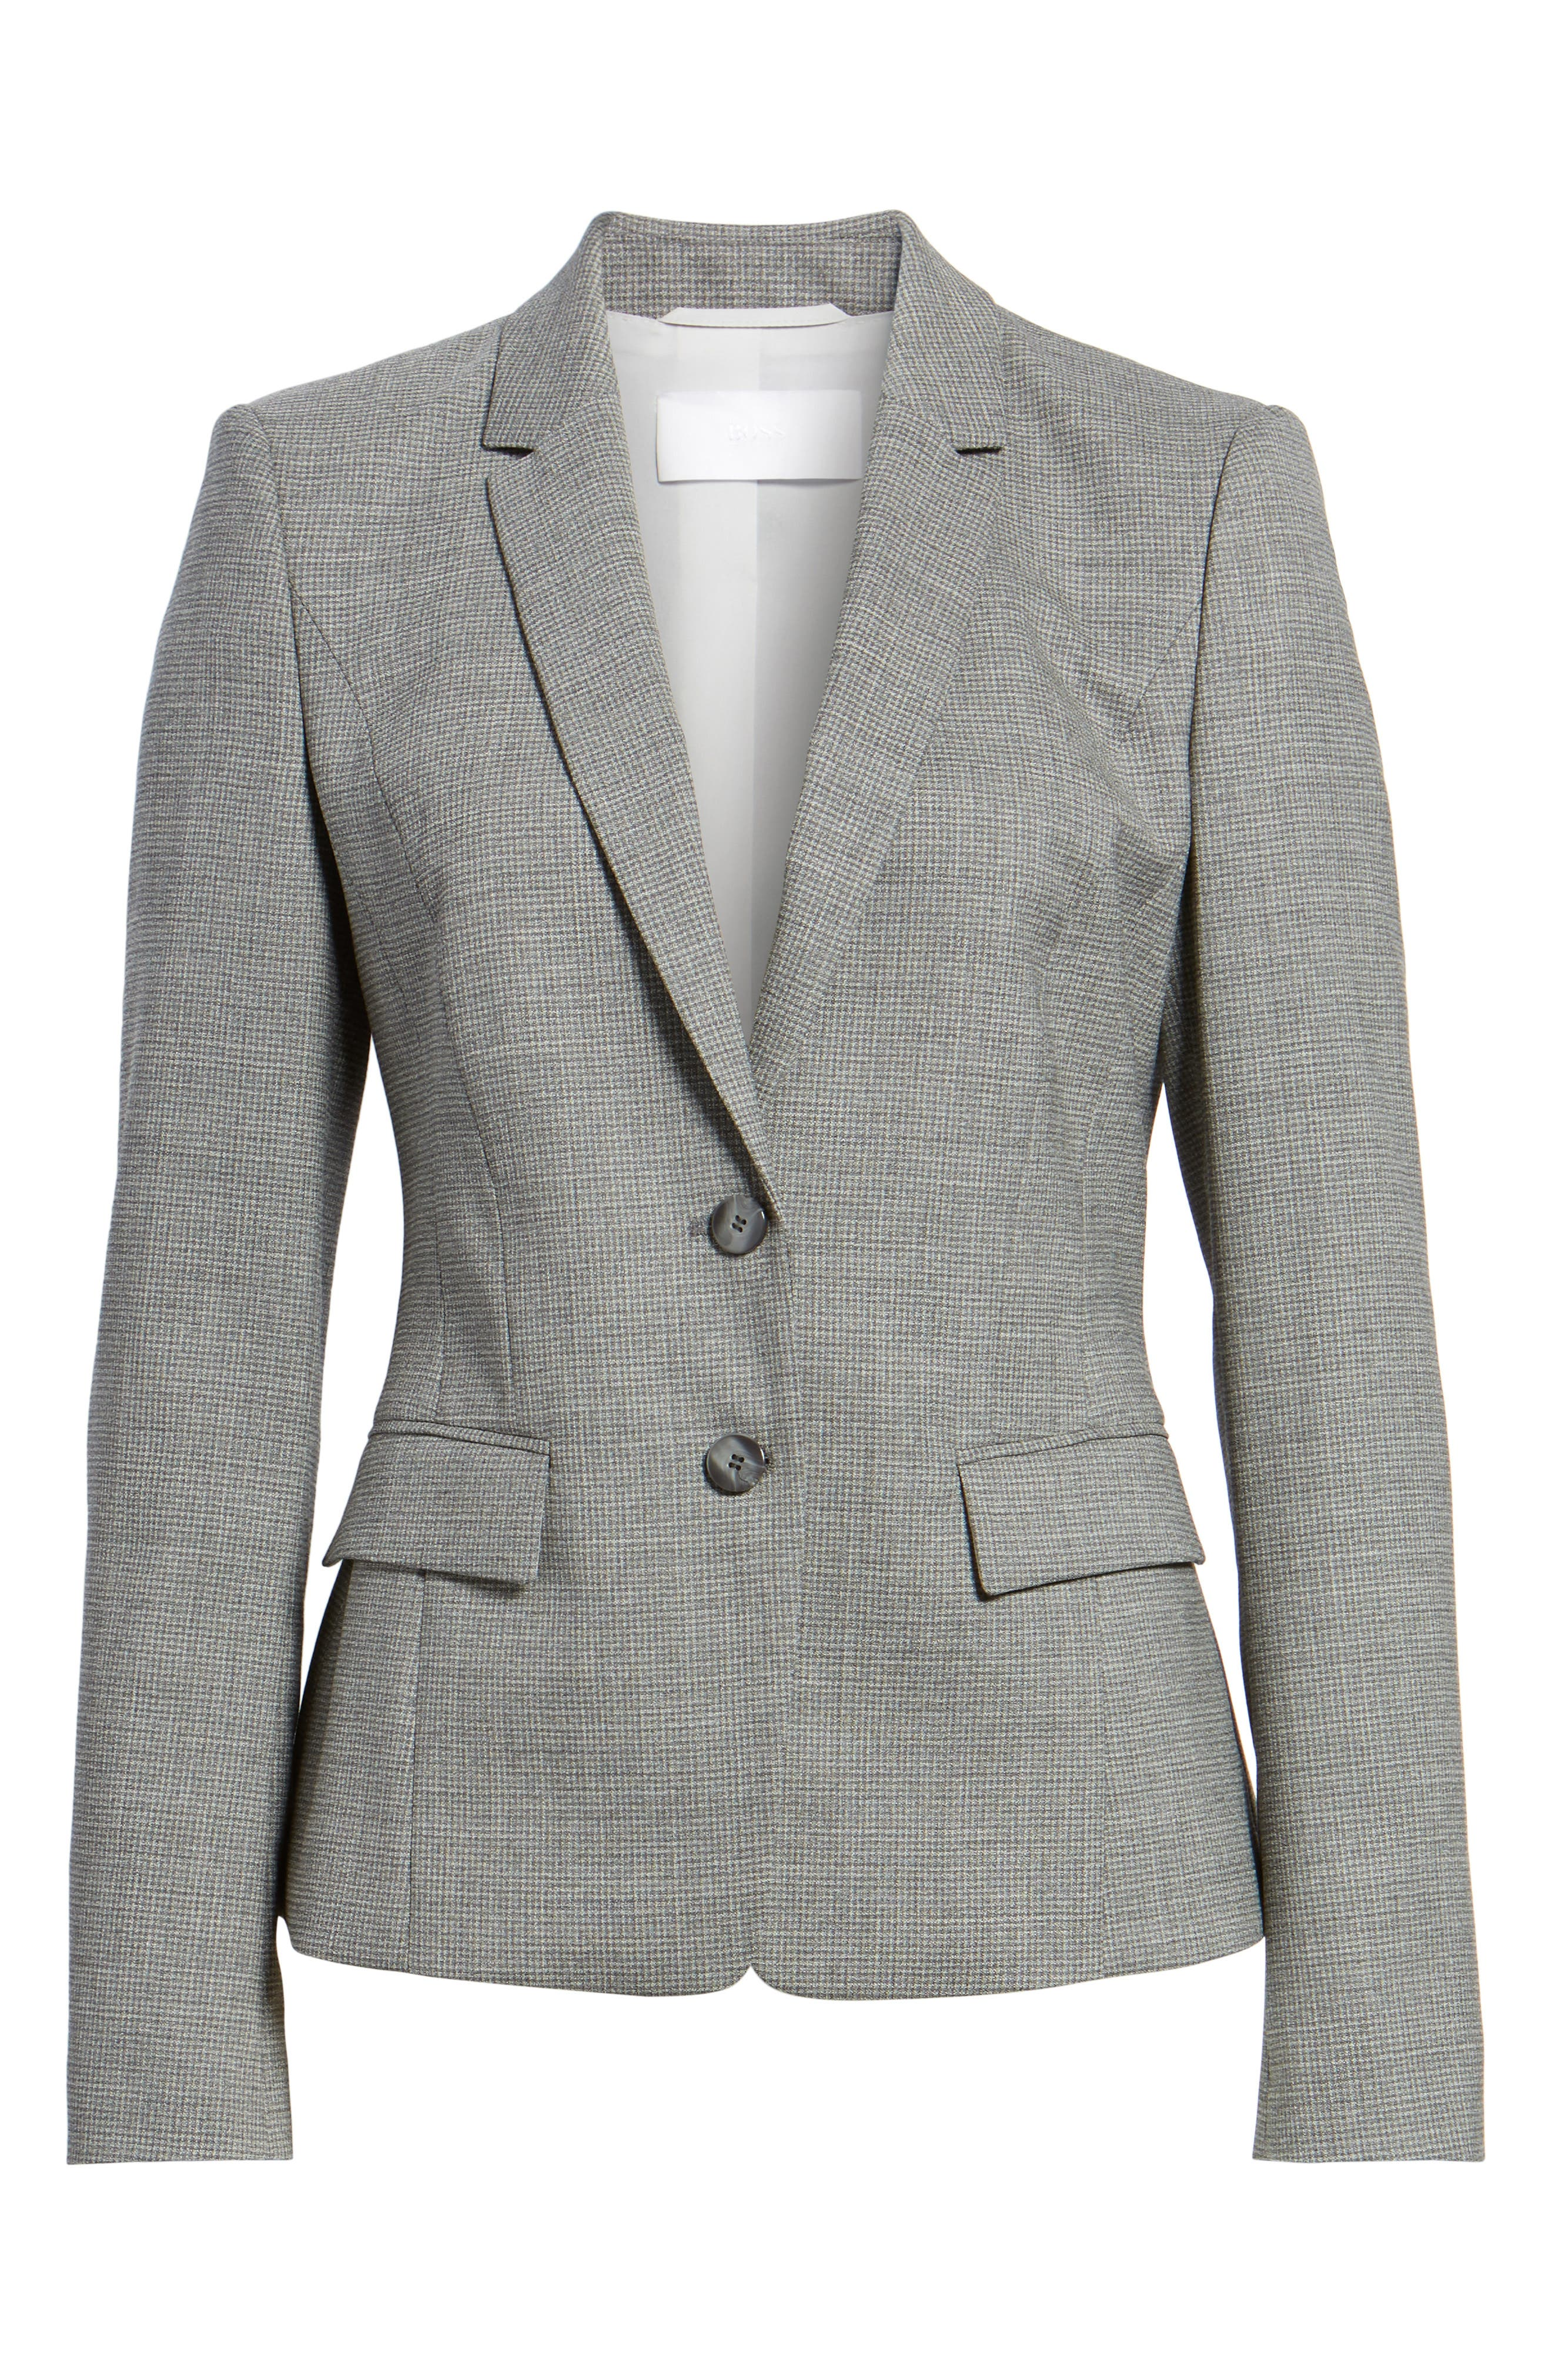 Jewisa Check Wool Jacket,                             Alternate thumbnail 5, color,                             066